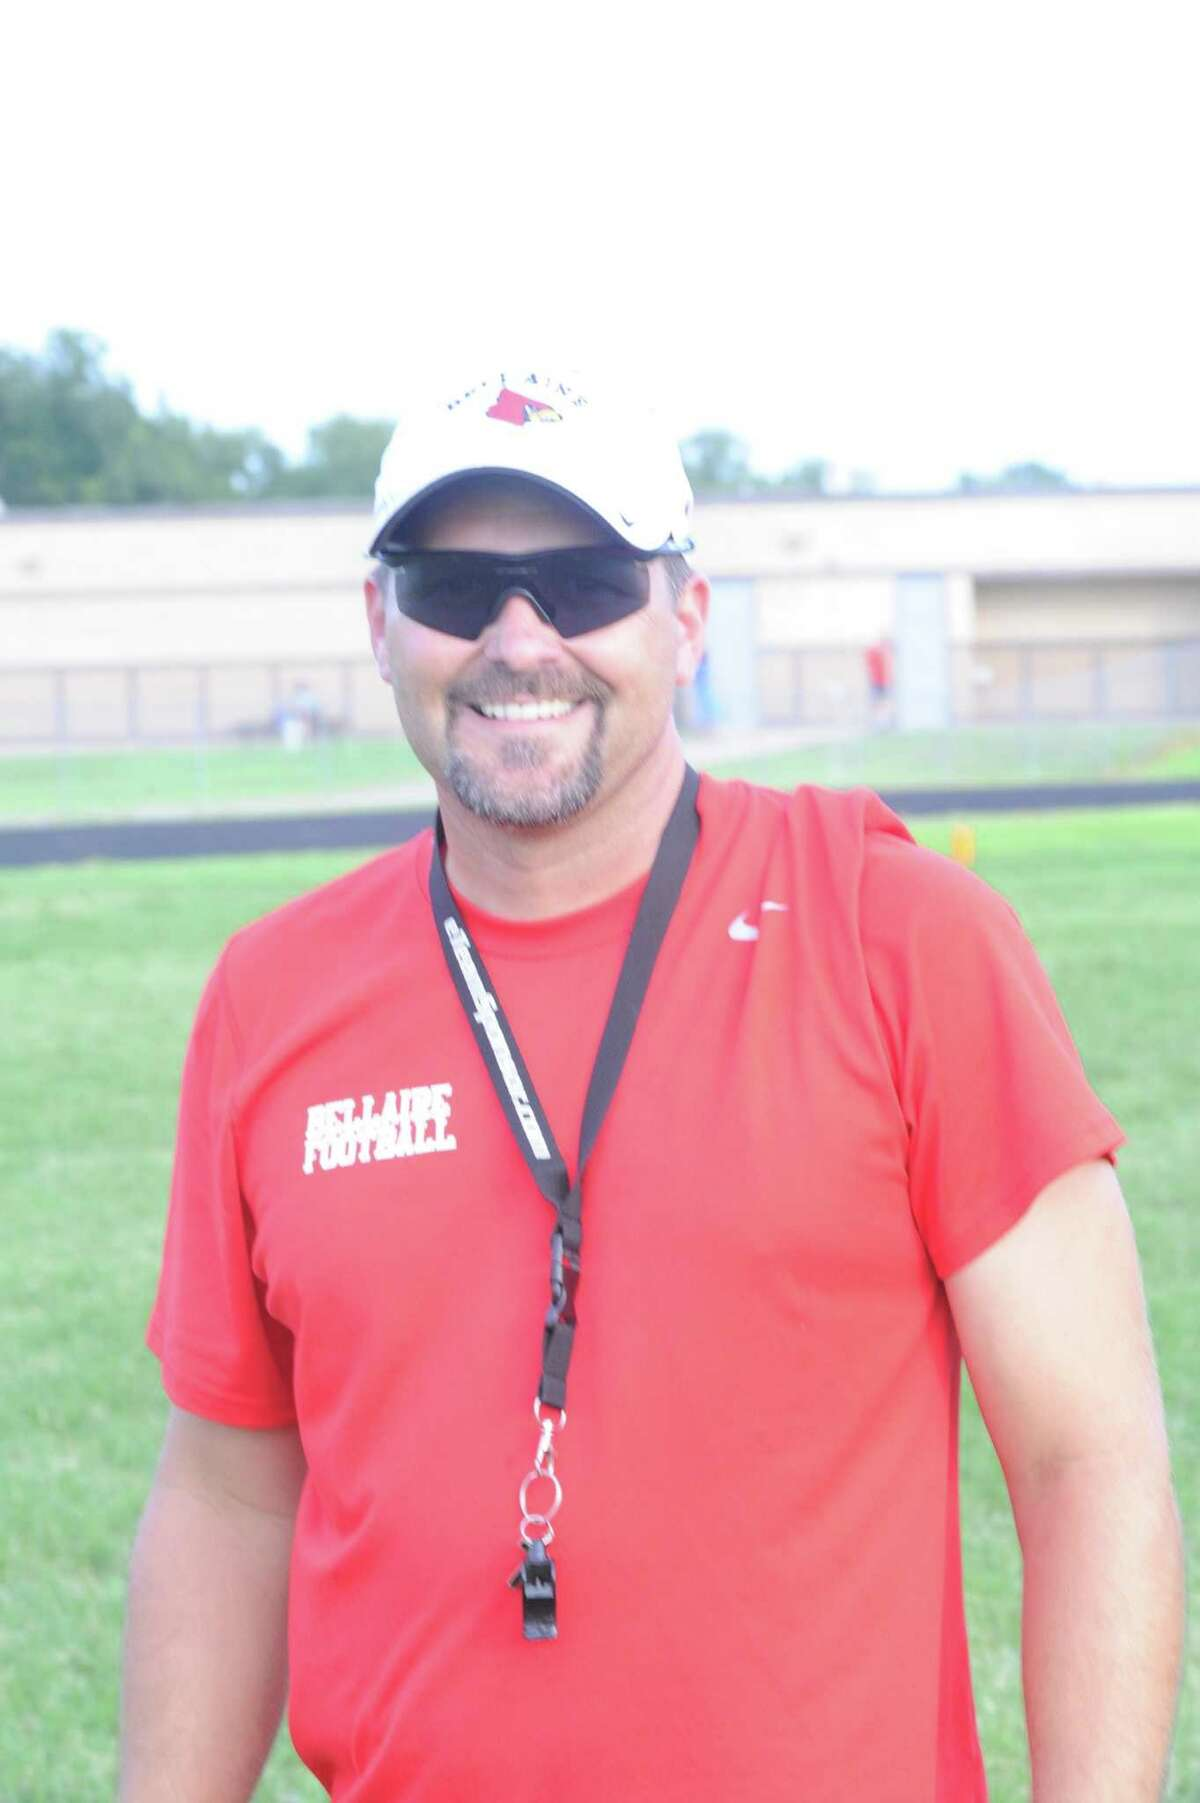 Bellaire High School visited Elkins High School for a football scrimmage game, 8,24,2012. Varsity football coach for Bellaire is Trey Sissom.